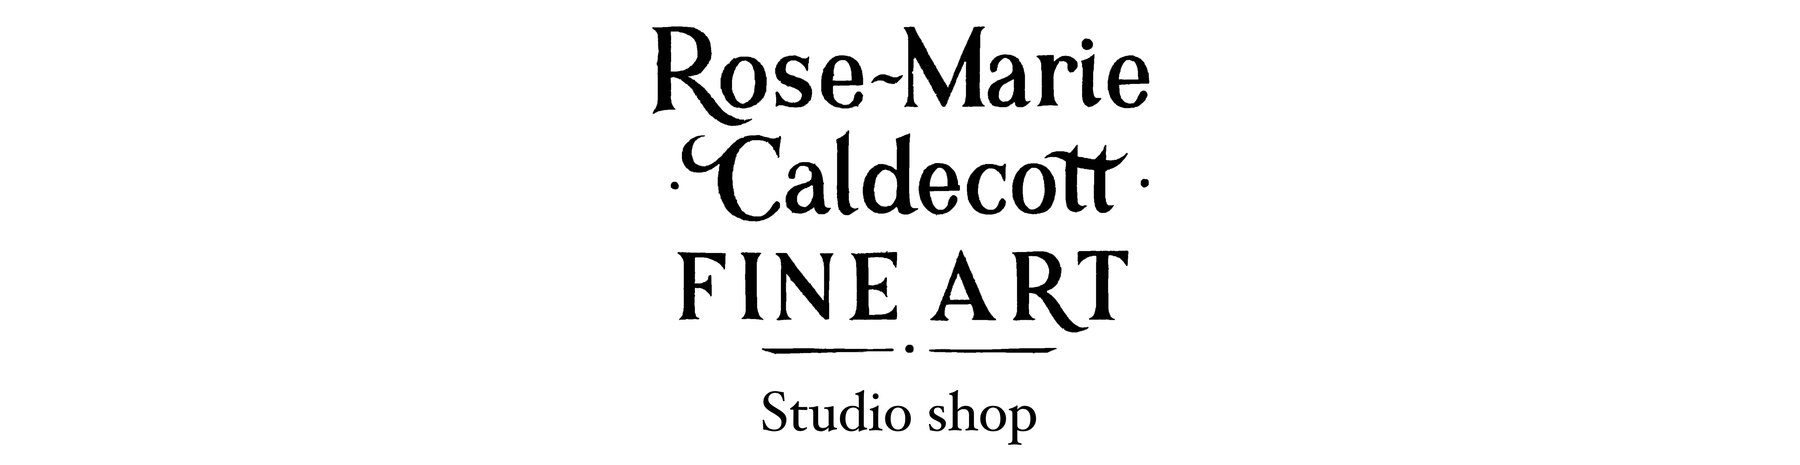 Rose-Marie Caldecott Home